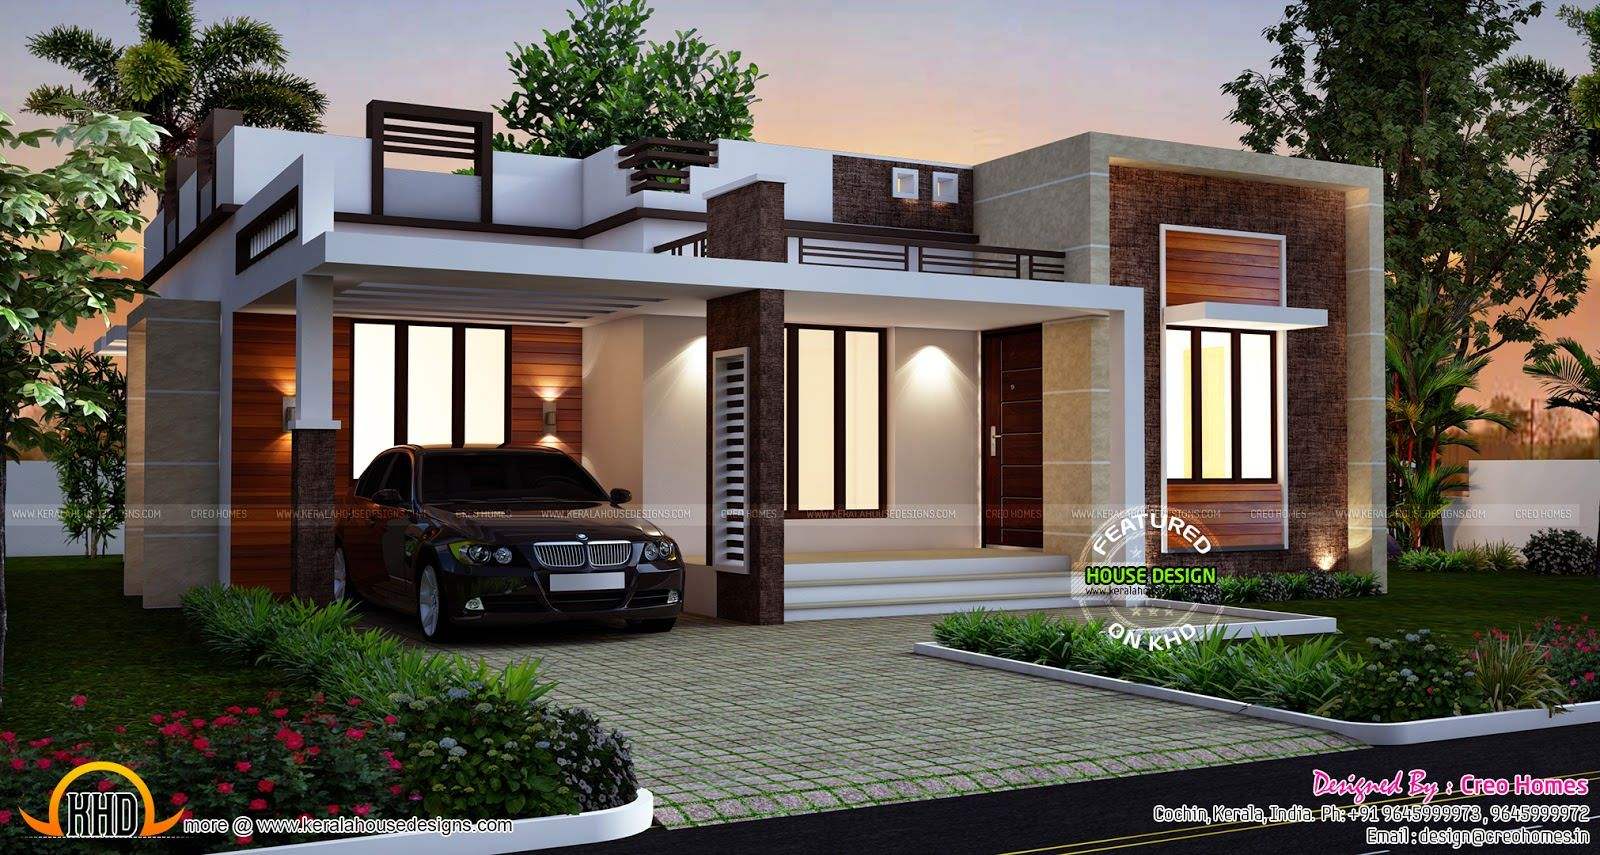 Designs homes design single story flat roof house plans for Modern single floor house designs